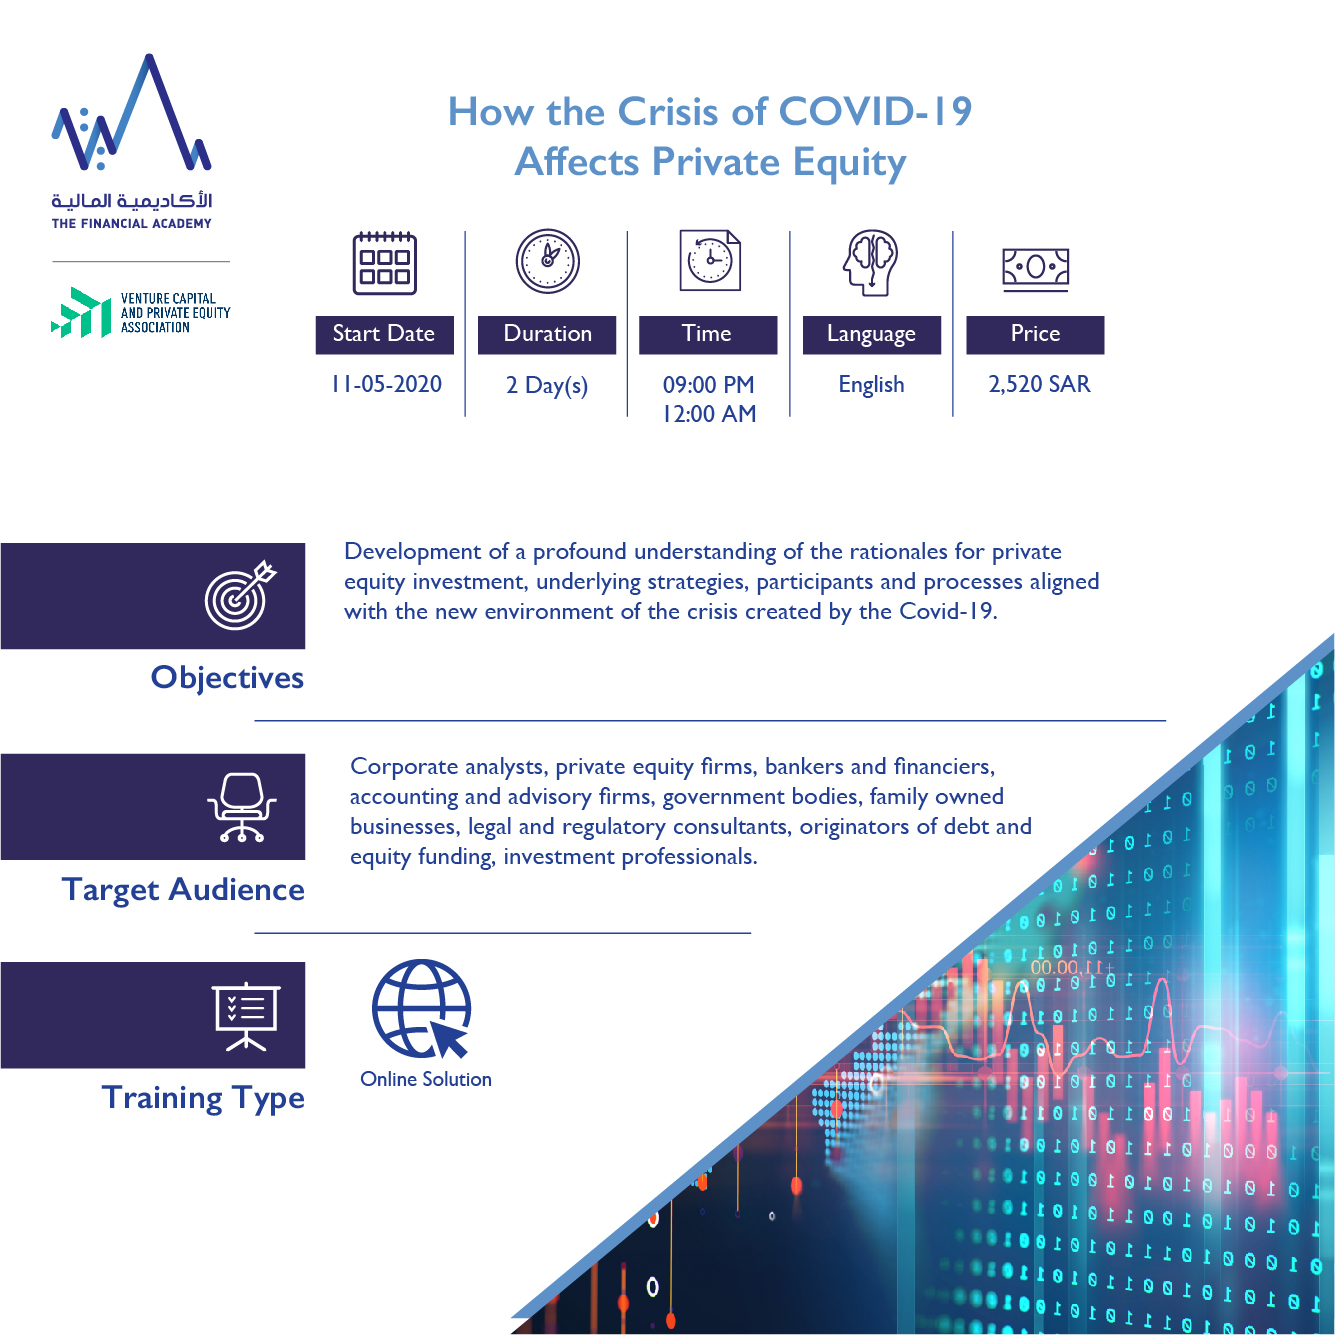 How the Crisis of COVID-19 Affects Private Equity